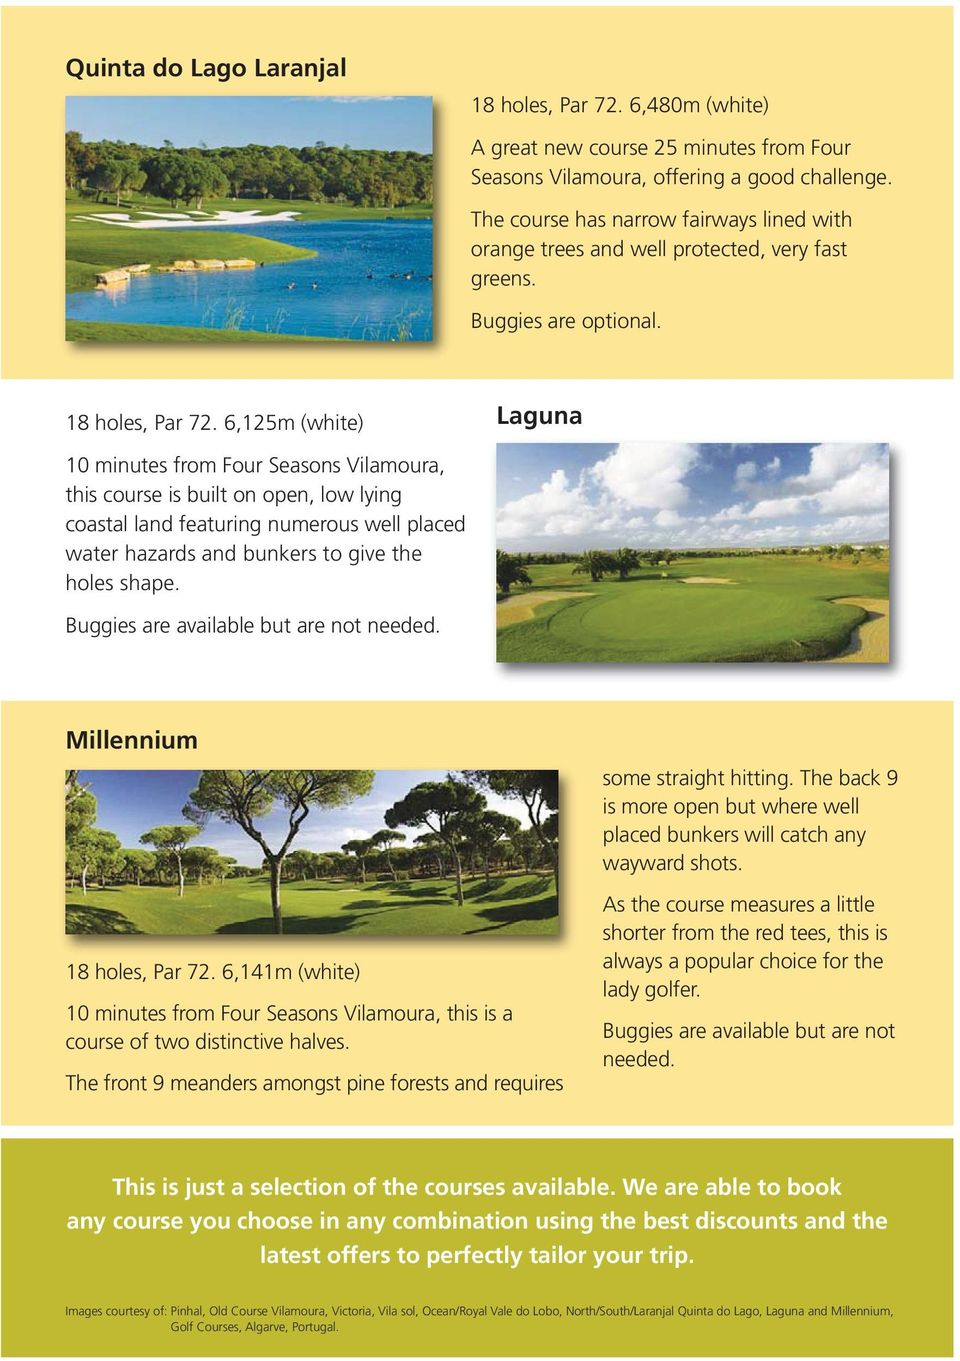 6,125m (white) Laguna 10 minutes from Four Seasons Vilamoura, this course is built on open, low lying coastal land featuring numerous well placed water hazards and bunkers to give the holes shape.